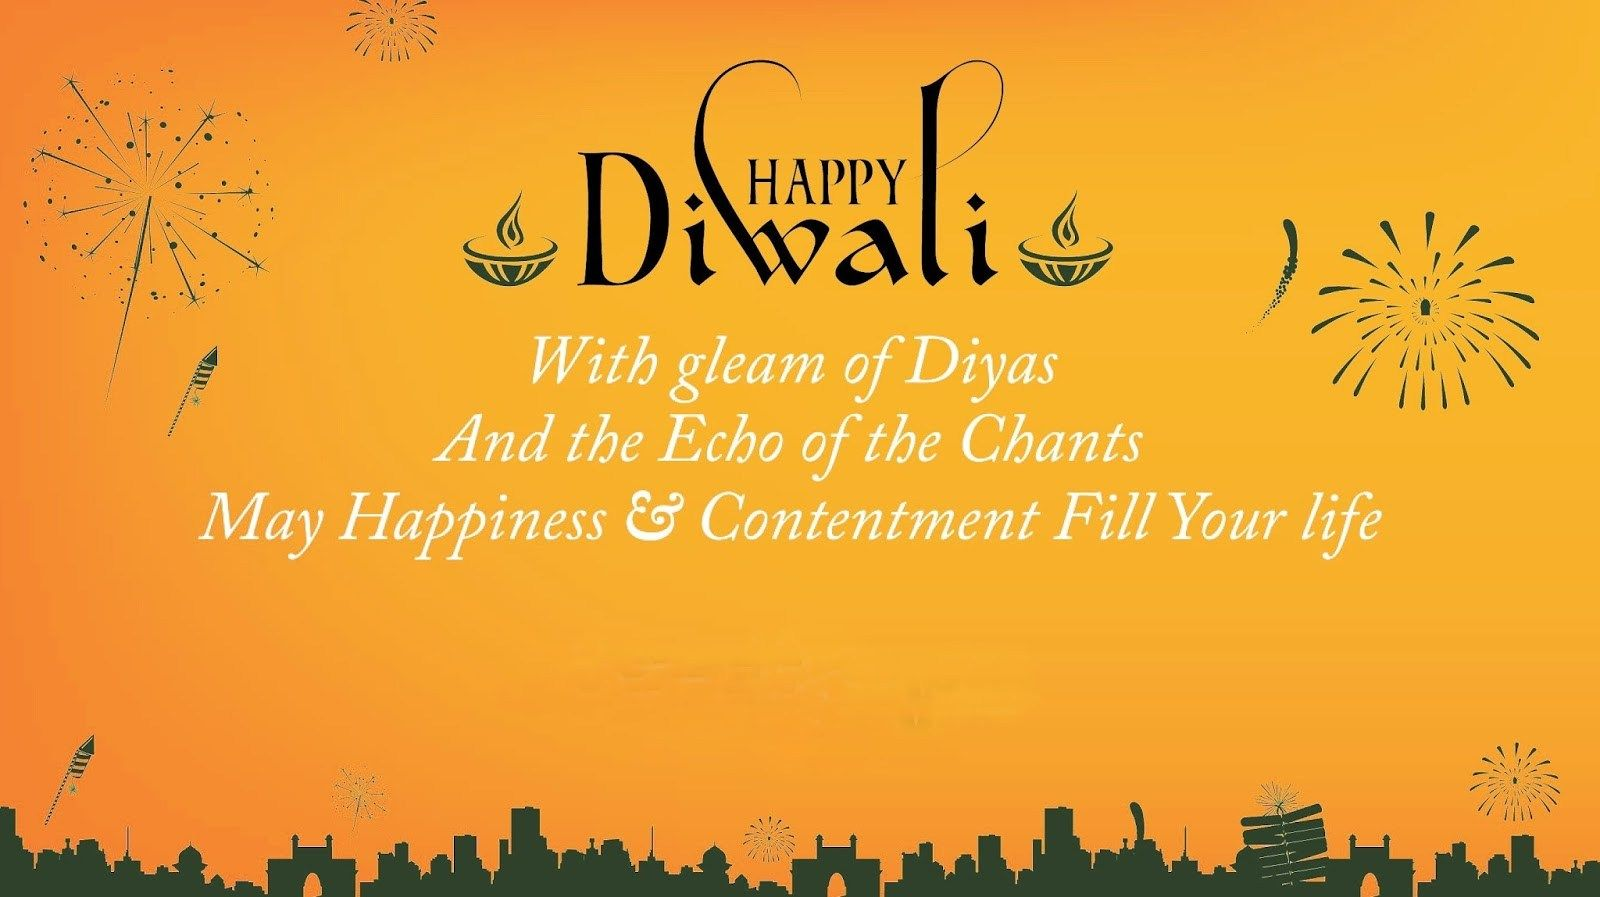 Best Short Messages And Thoughts On Diwali In English With Some